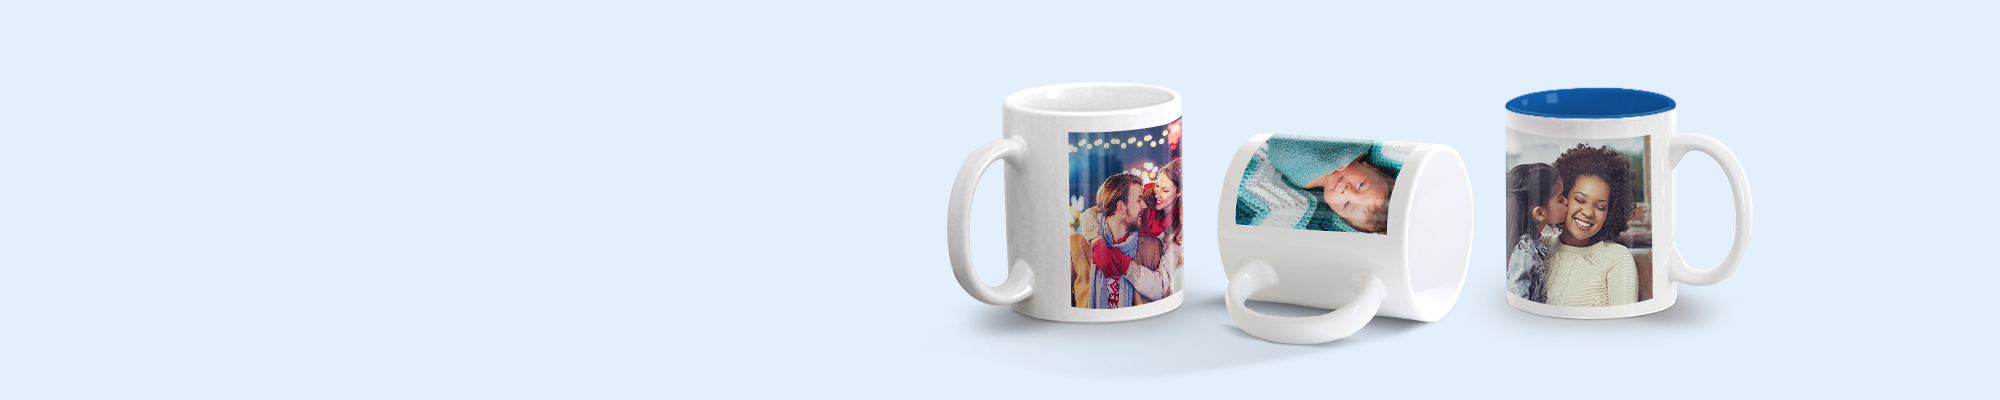 Photo Mugs Create your very own Photo Mug or make one for your loved ones